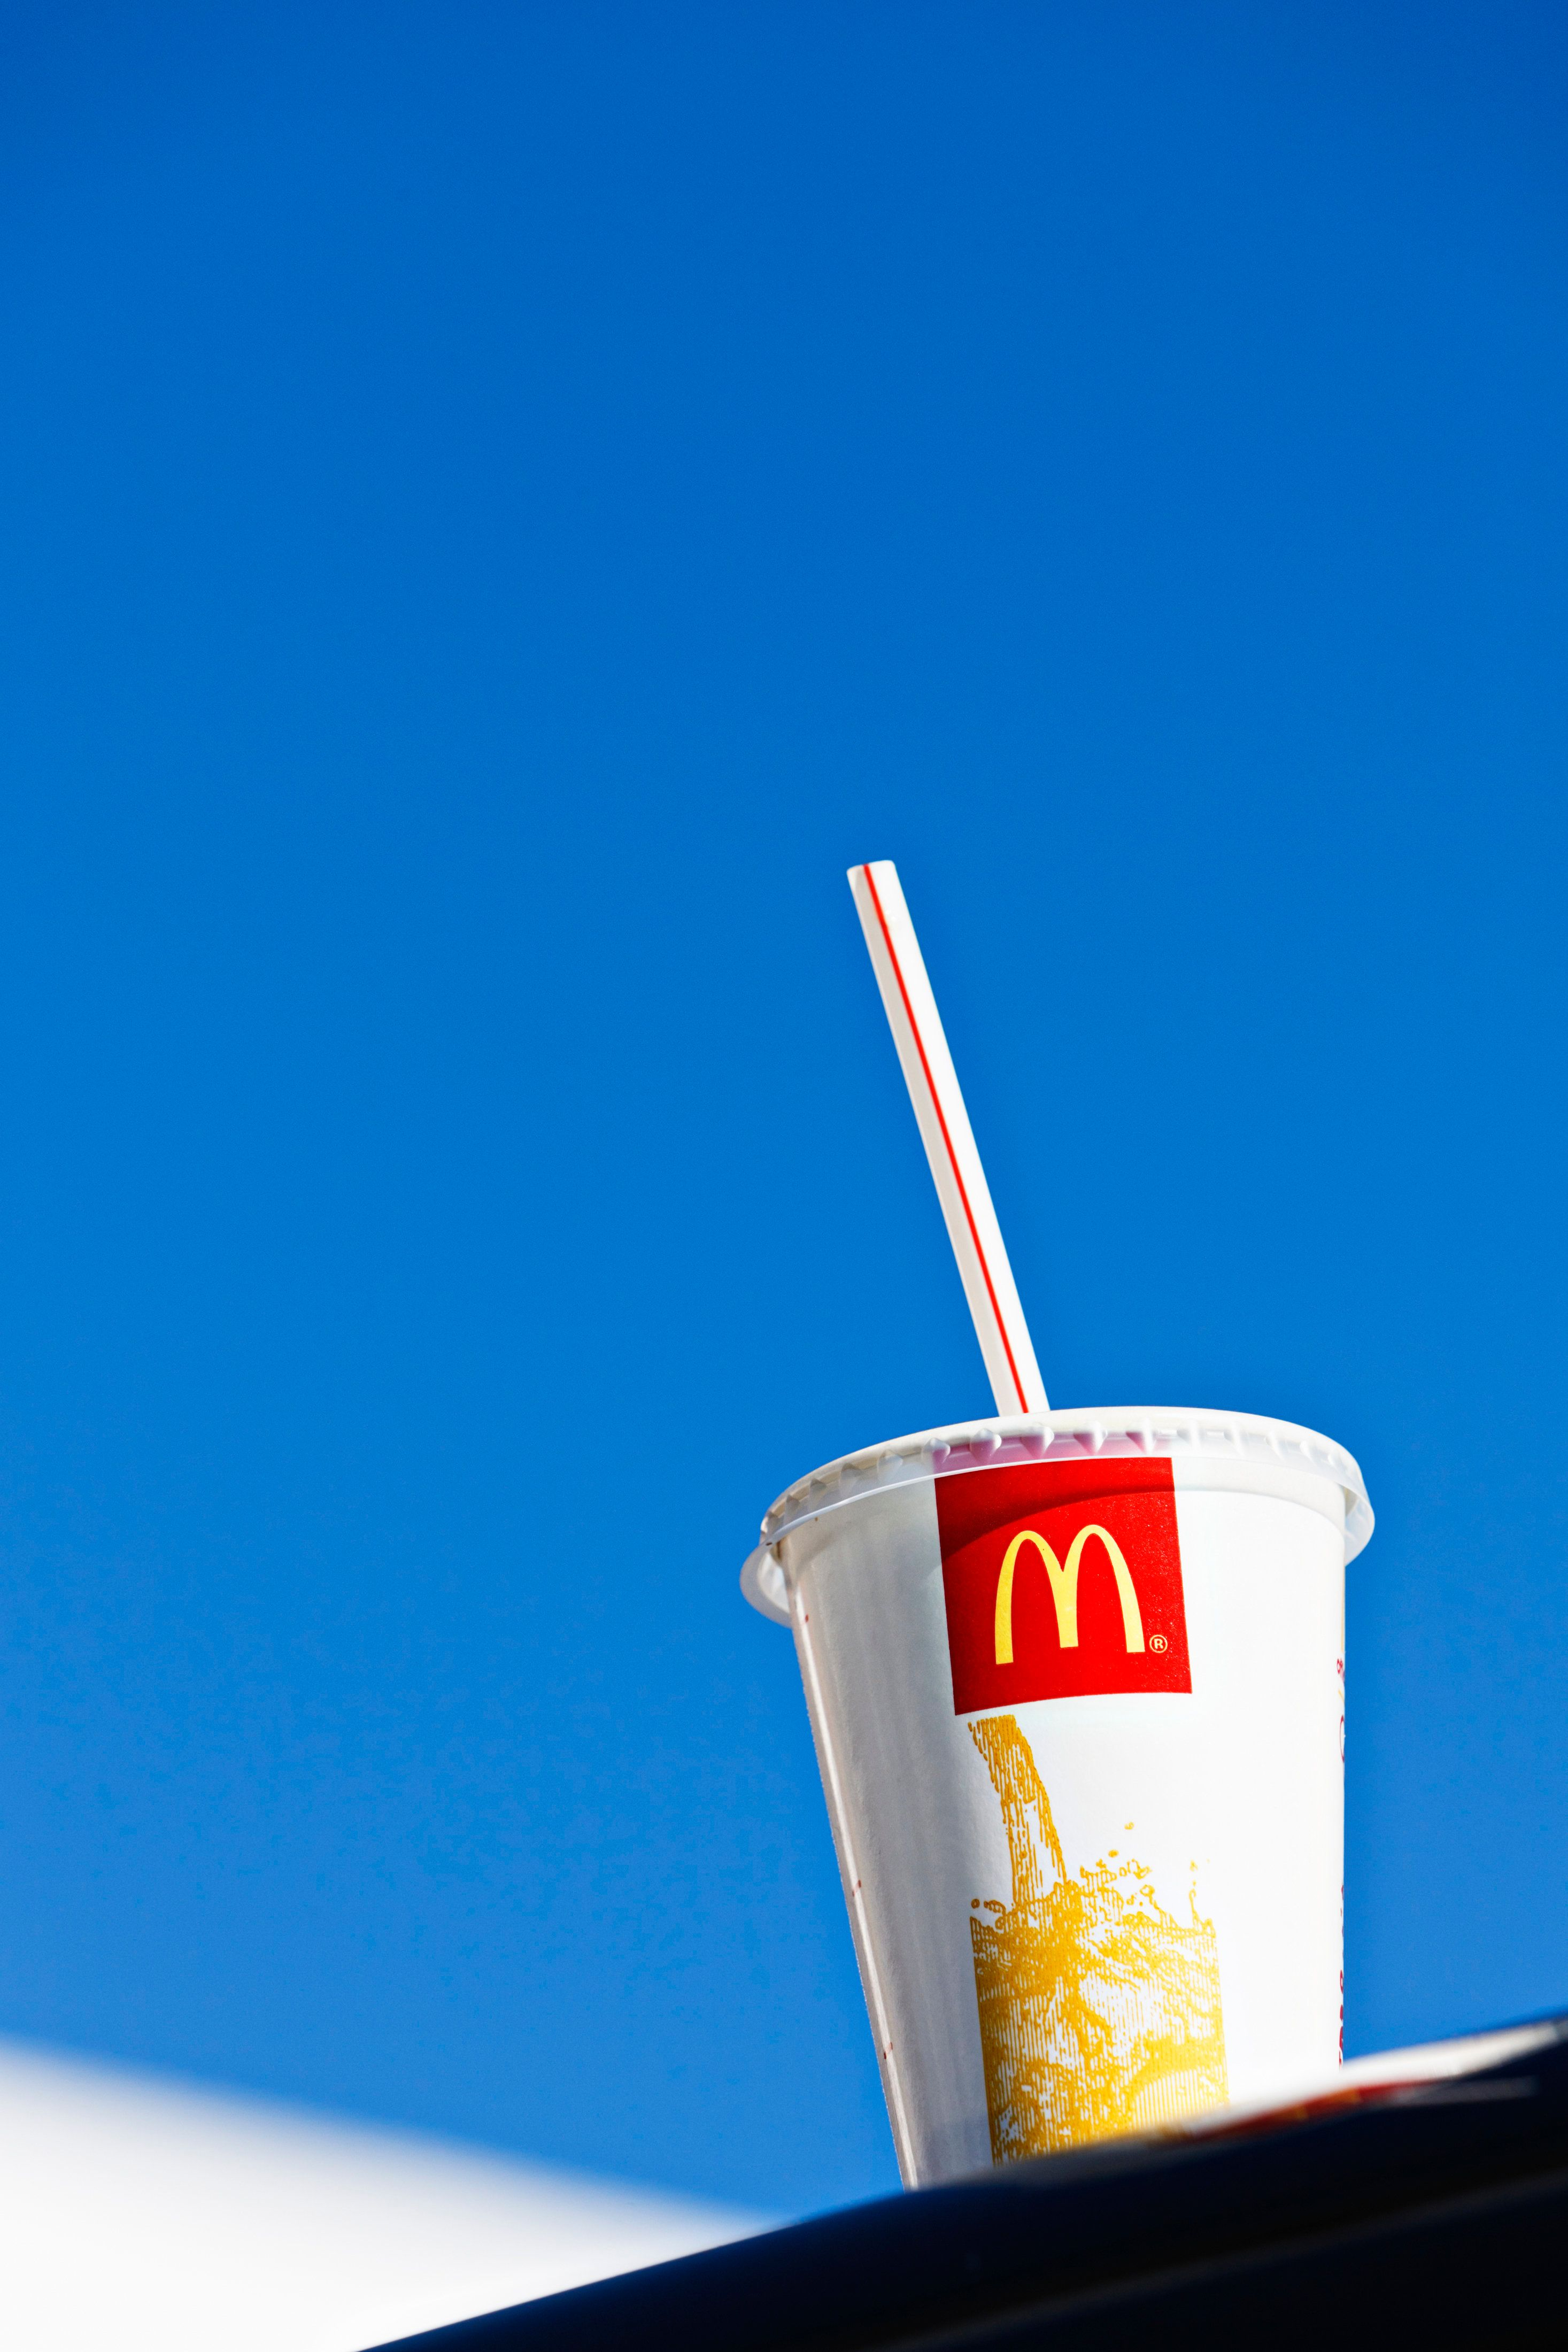 McDonald's To Phase Out Plastic Straws To Protect The